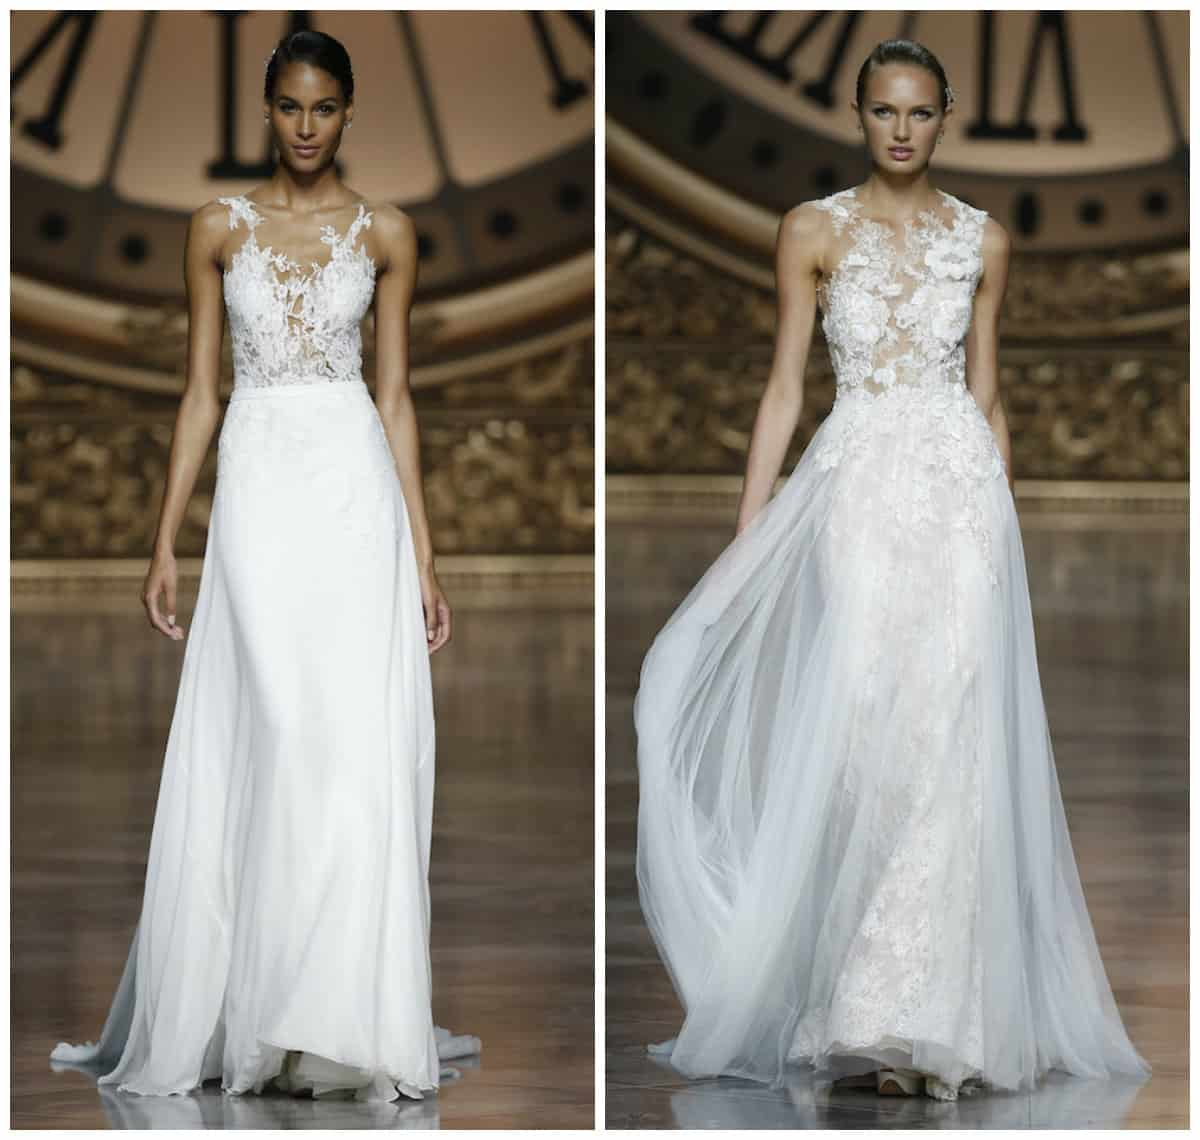 Wedding Dresses 2016 from Pronovias 1